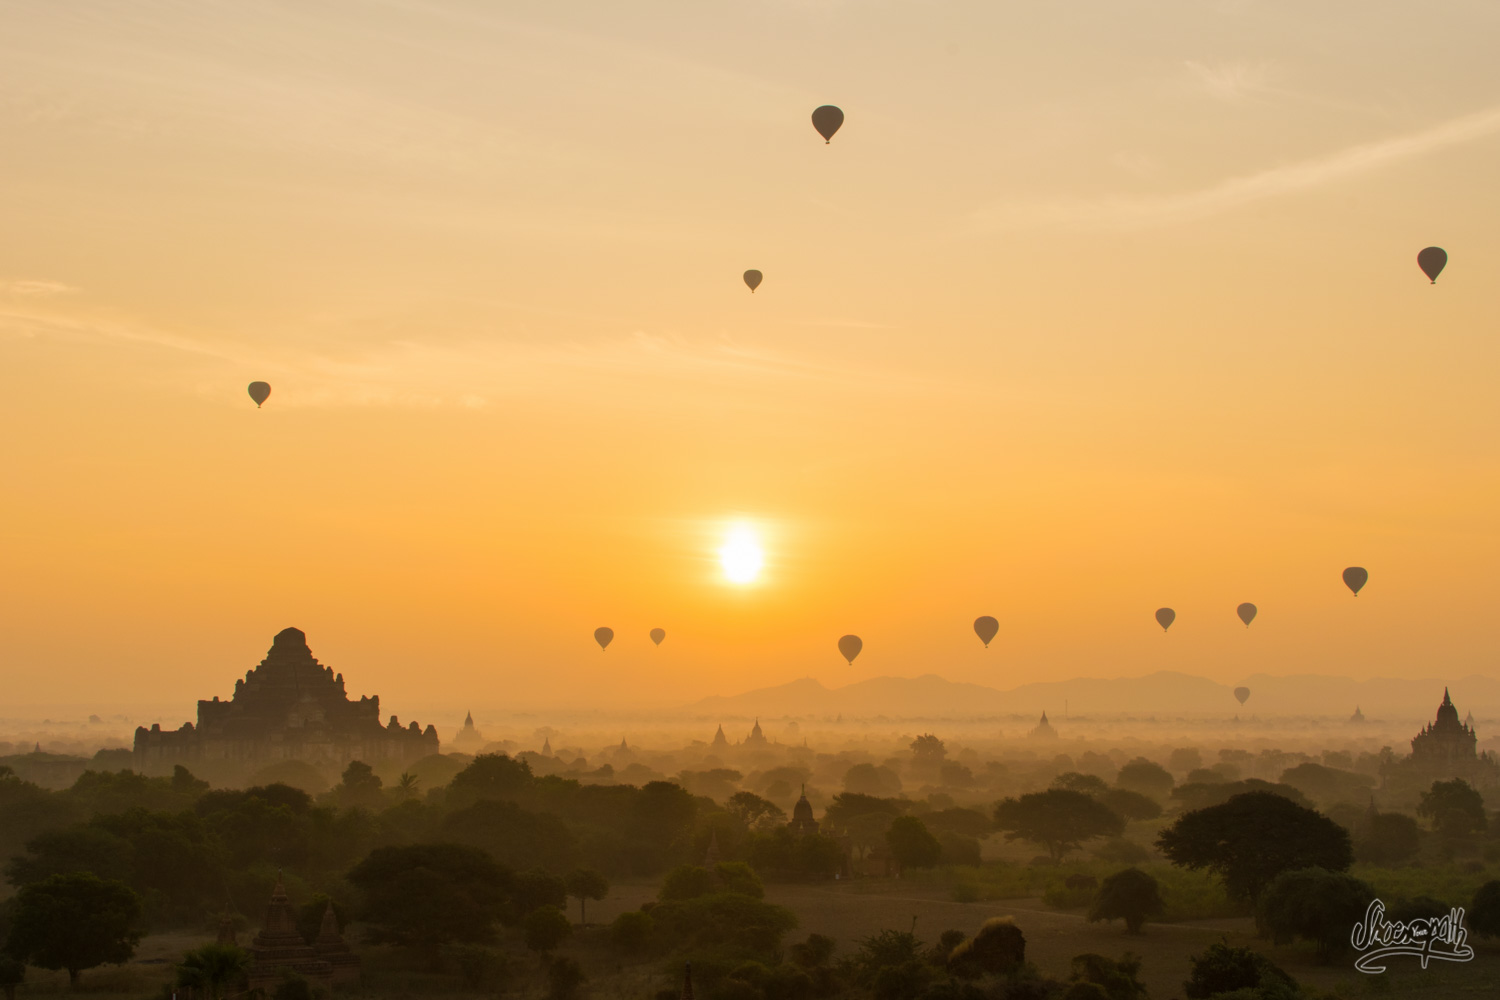 Let the show begin ! Hot air ballons flying over the pagodas of Bagan during sunrise.